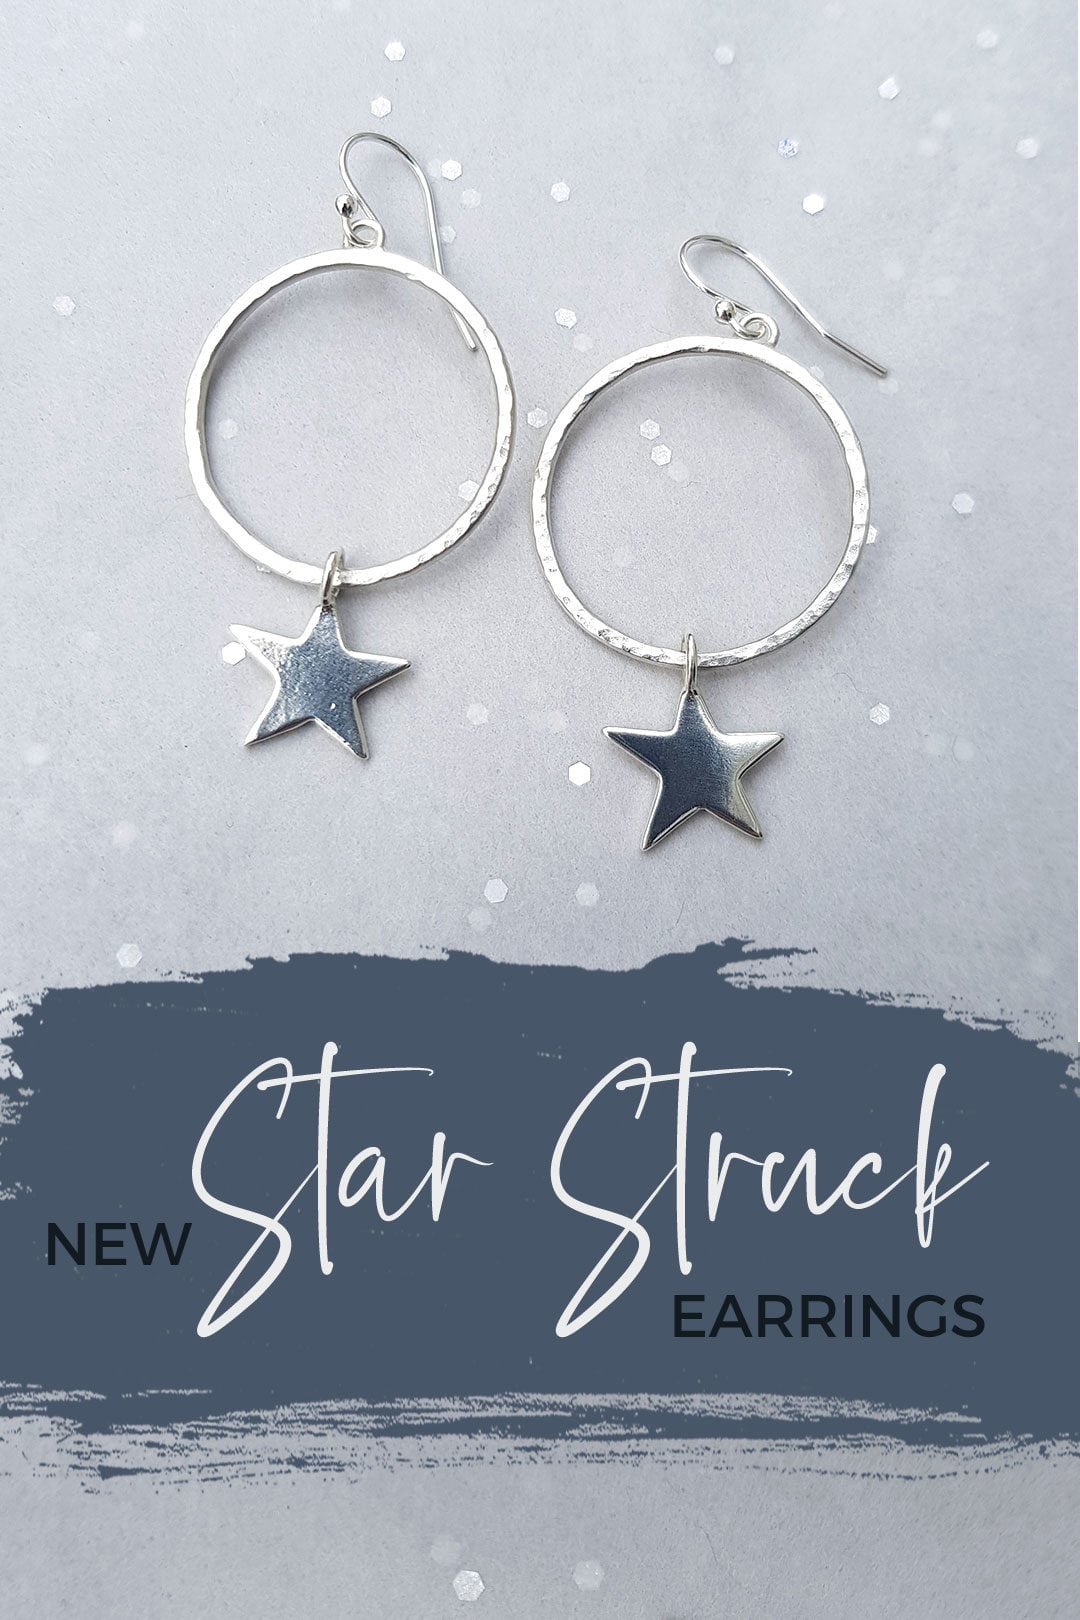 New Star Struck hoop earrings